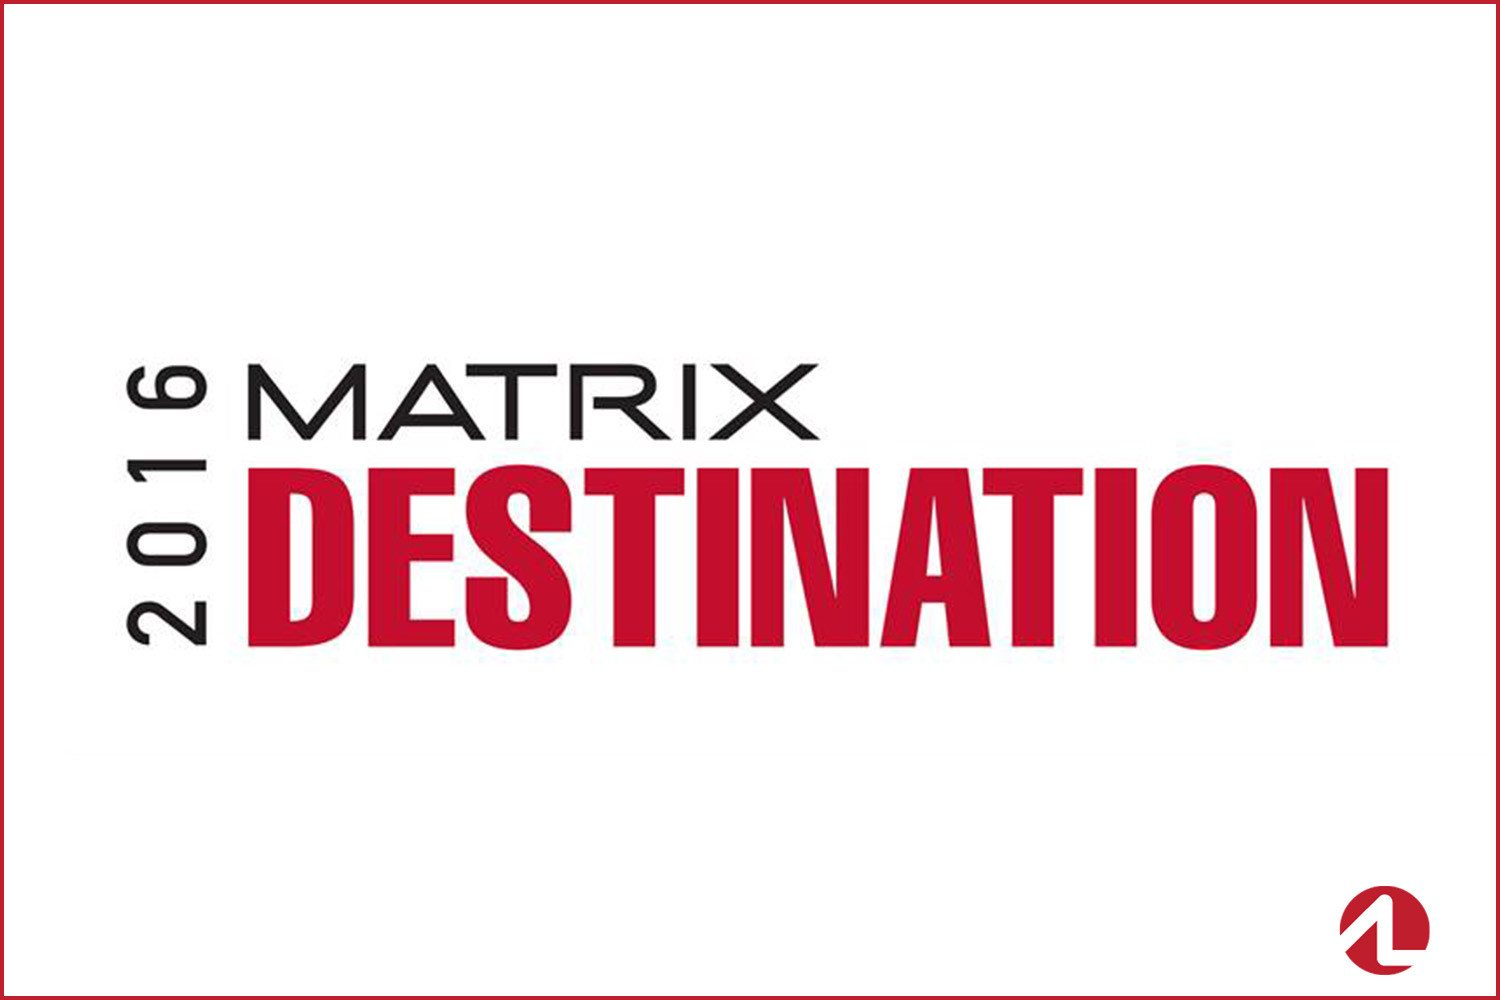 Matrix Destination